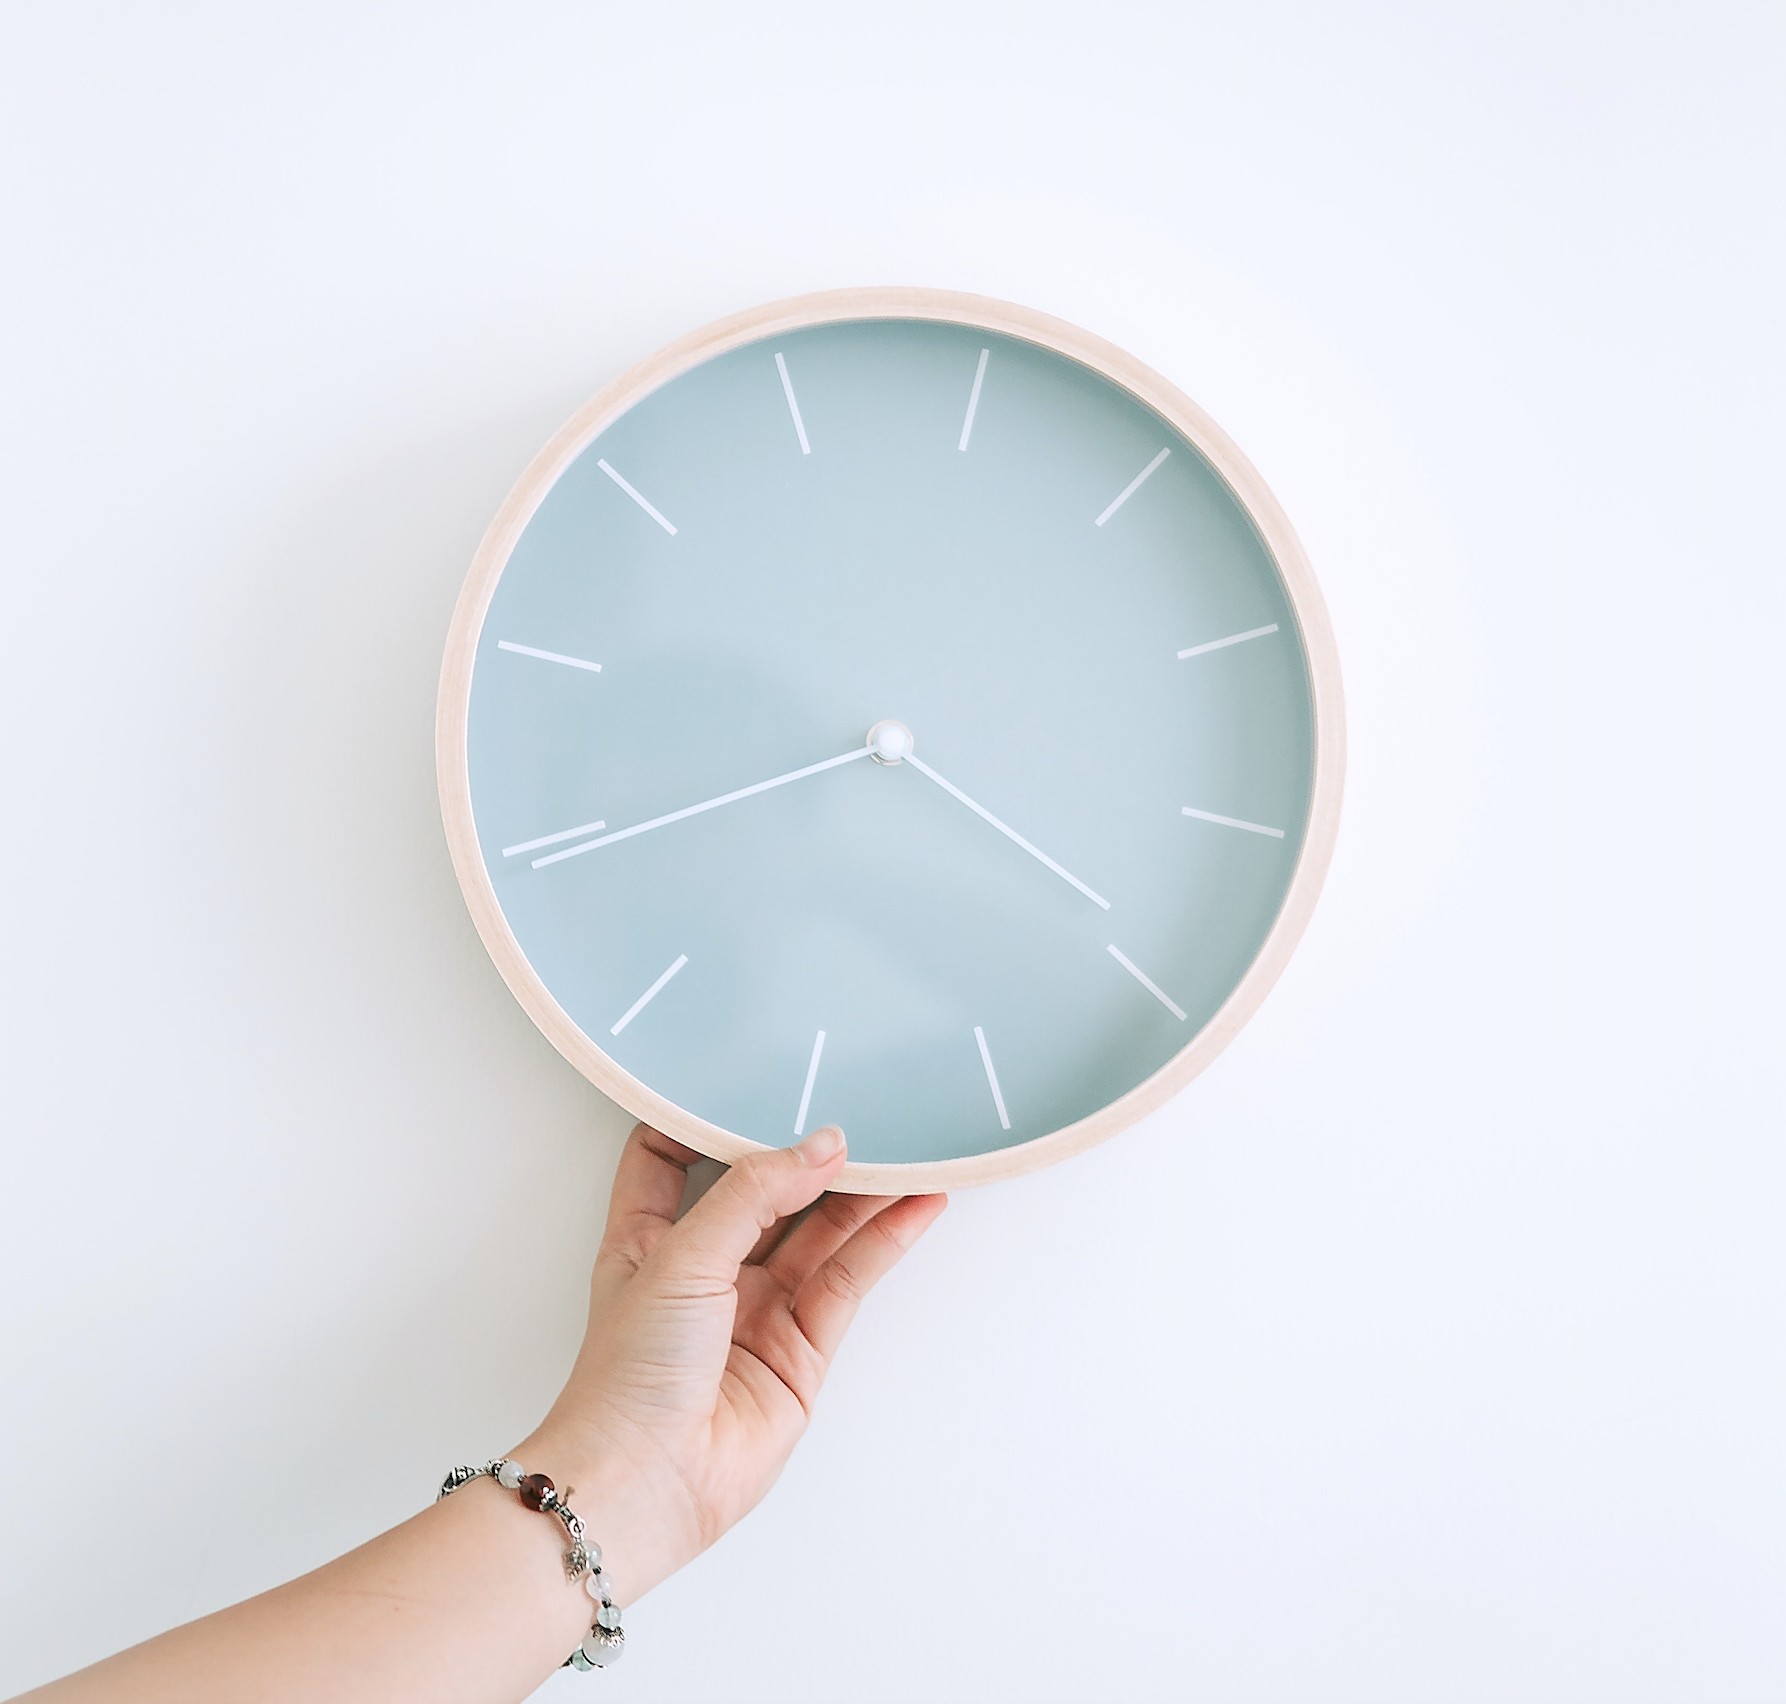 teal clock showing 20 minutes before four being held by a woman's hand